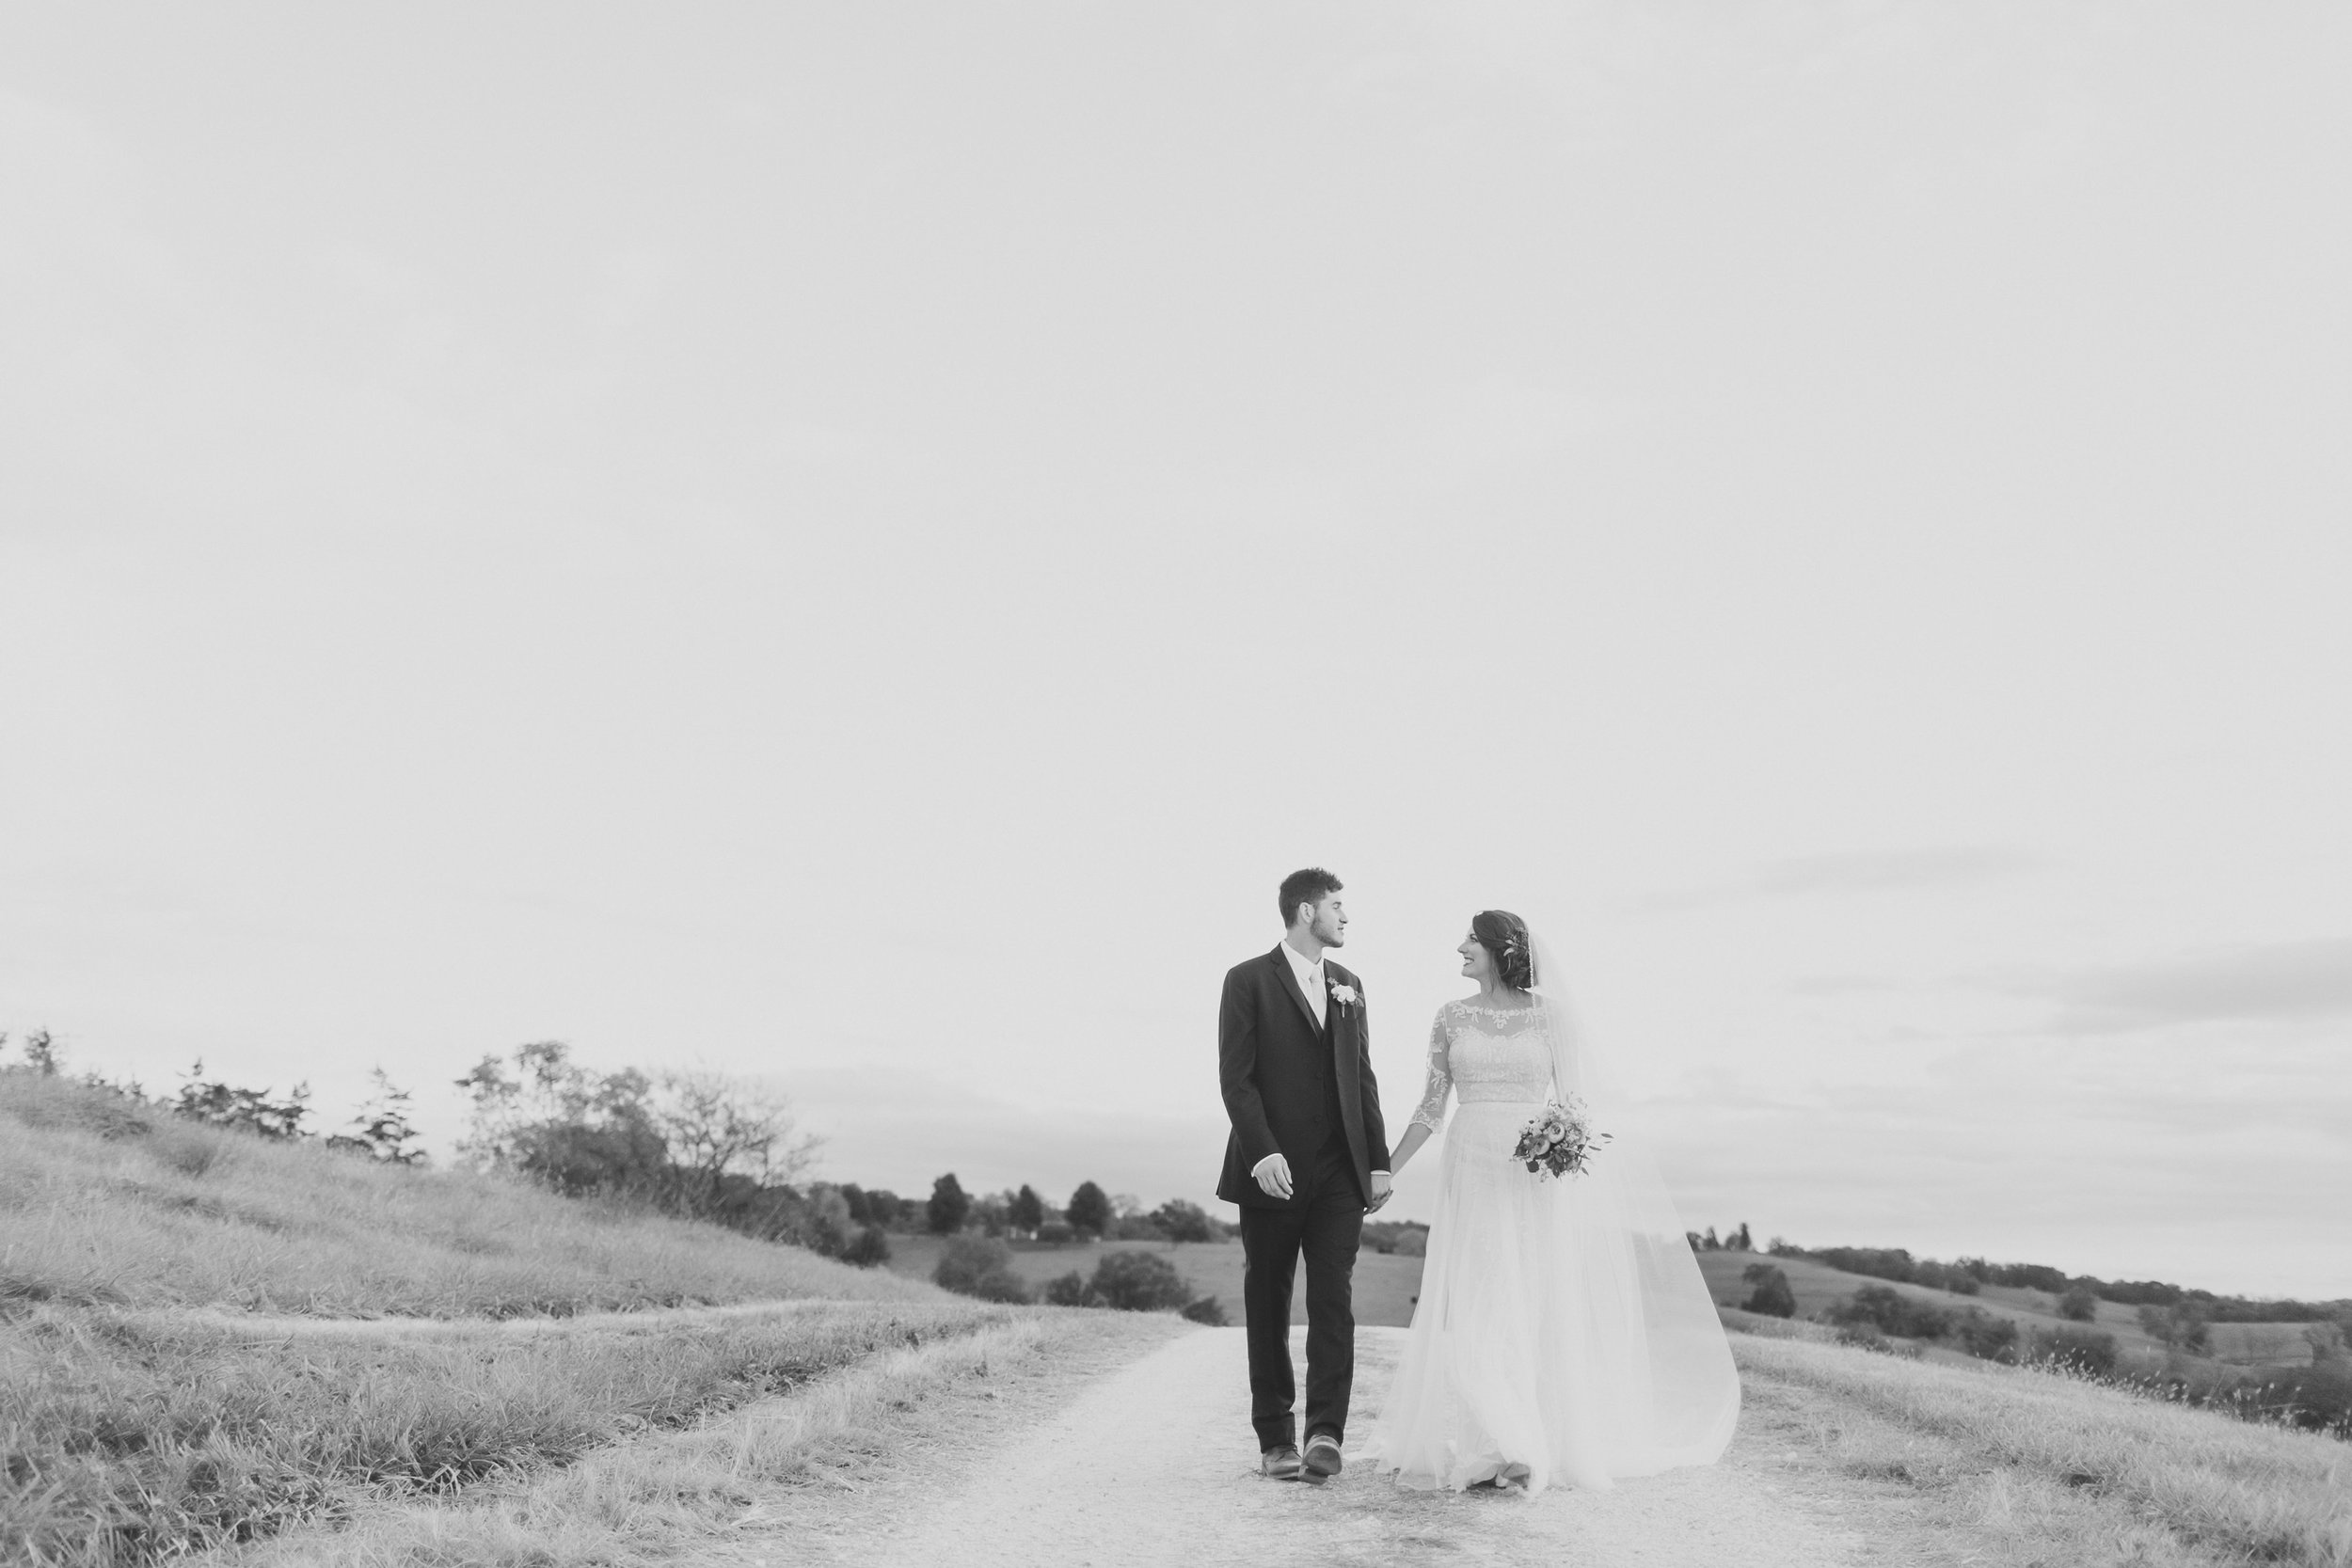 MissouriRusticWedding_StLouisWeddingPhotographer_AliciaDan_CatherineRhodesPhotography-4001-Edit.jpg